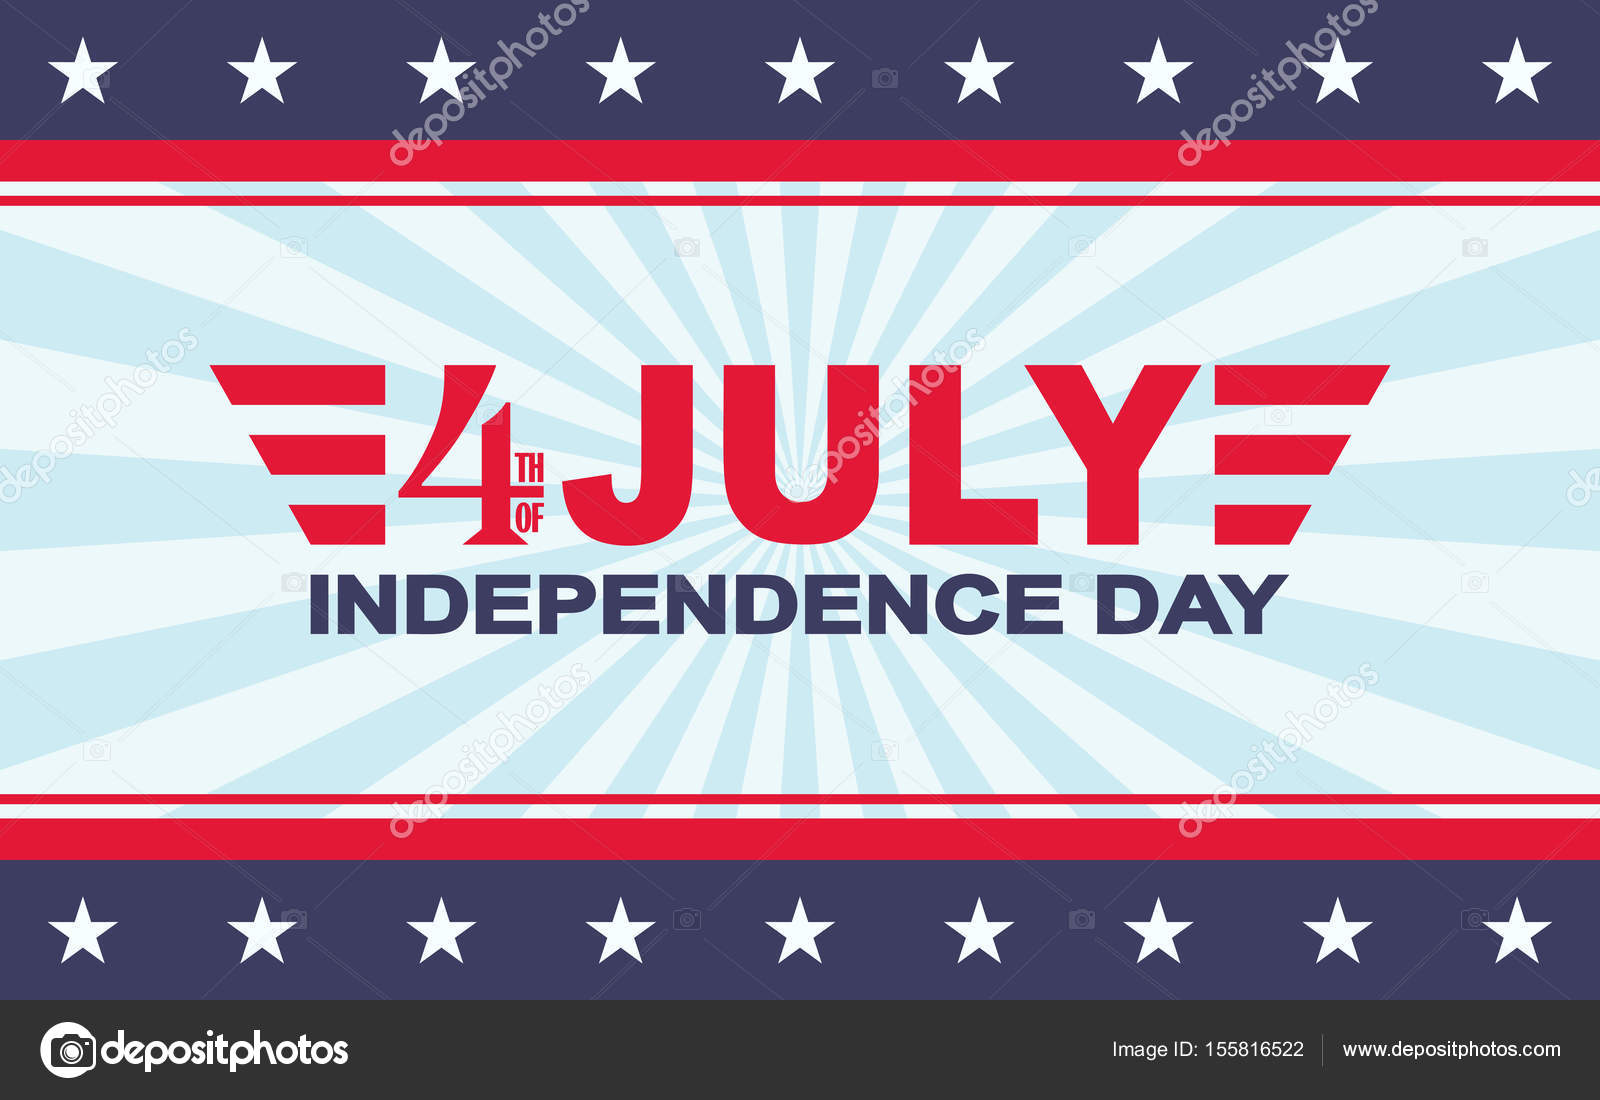 Vector 4th of July festive design Independence Day background - 4th of july template